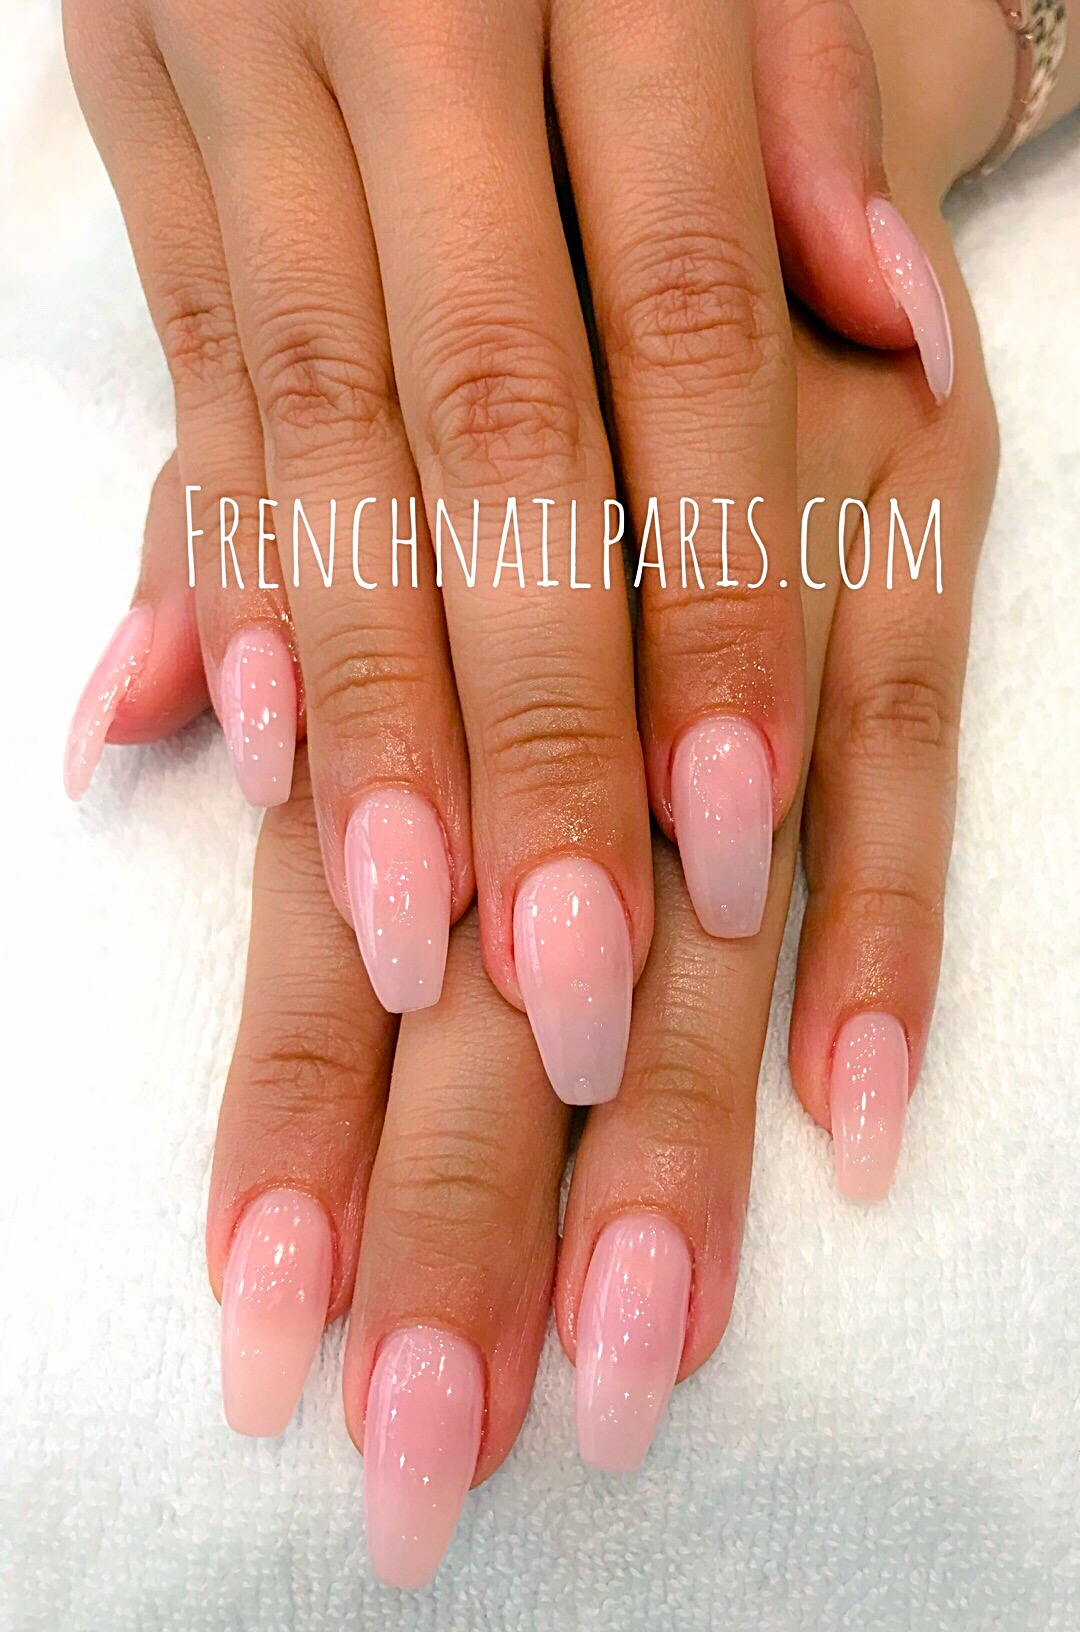 Pose d'ongles avec capsules